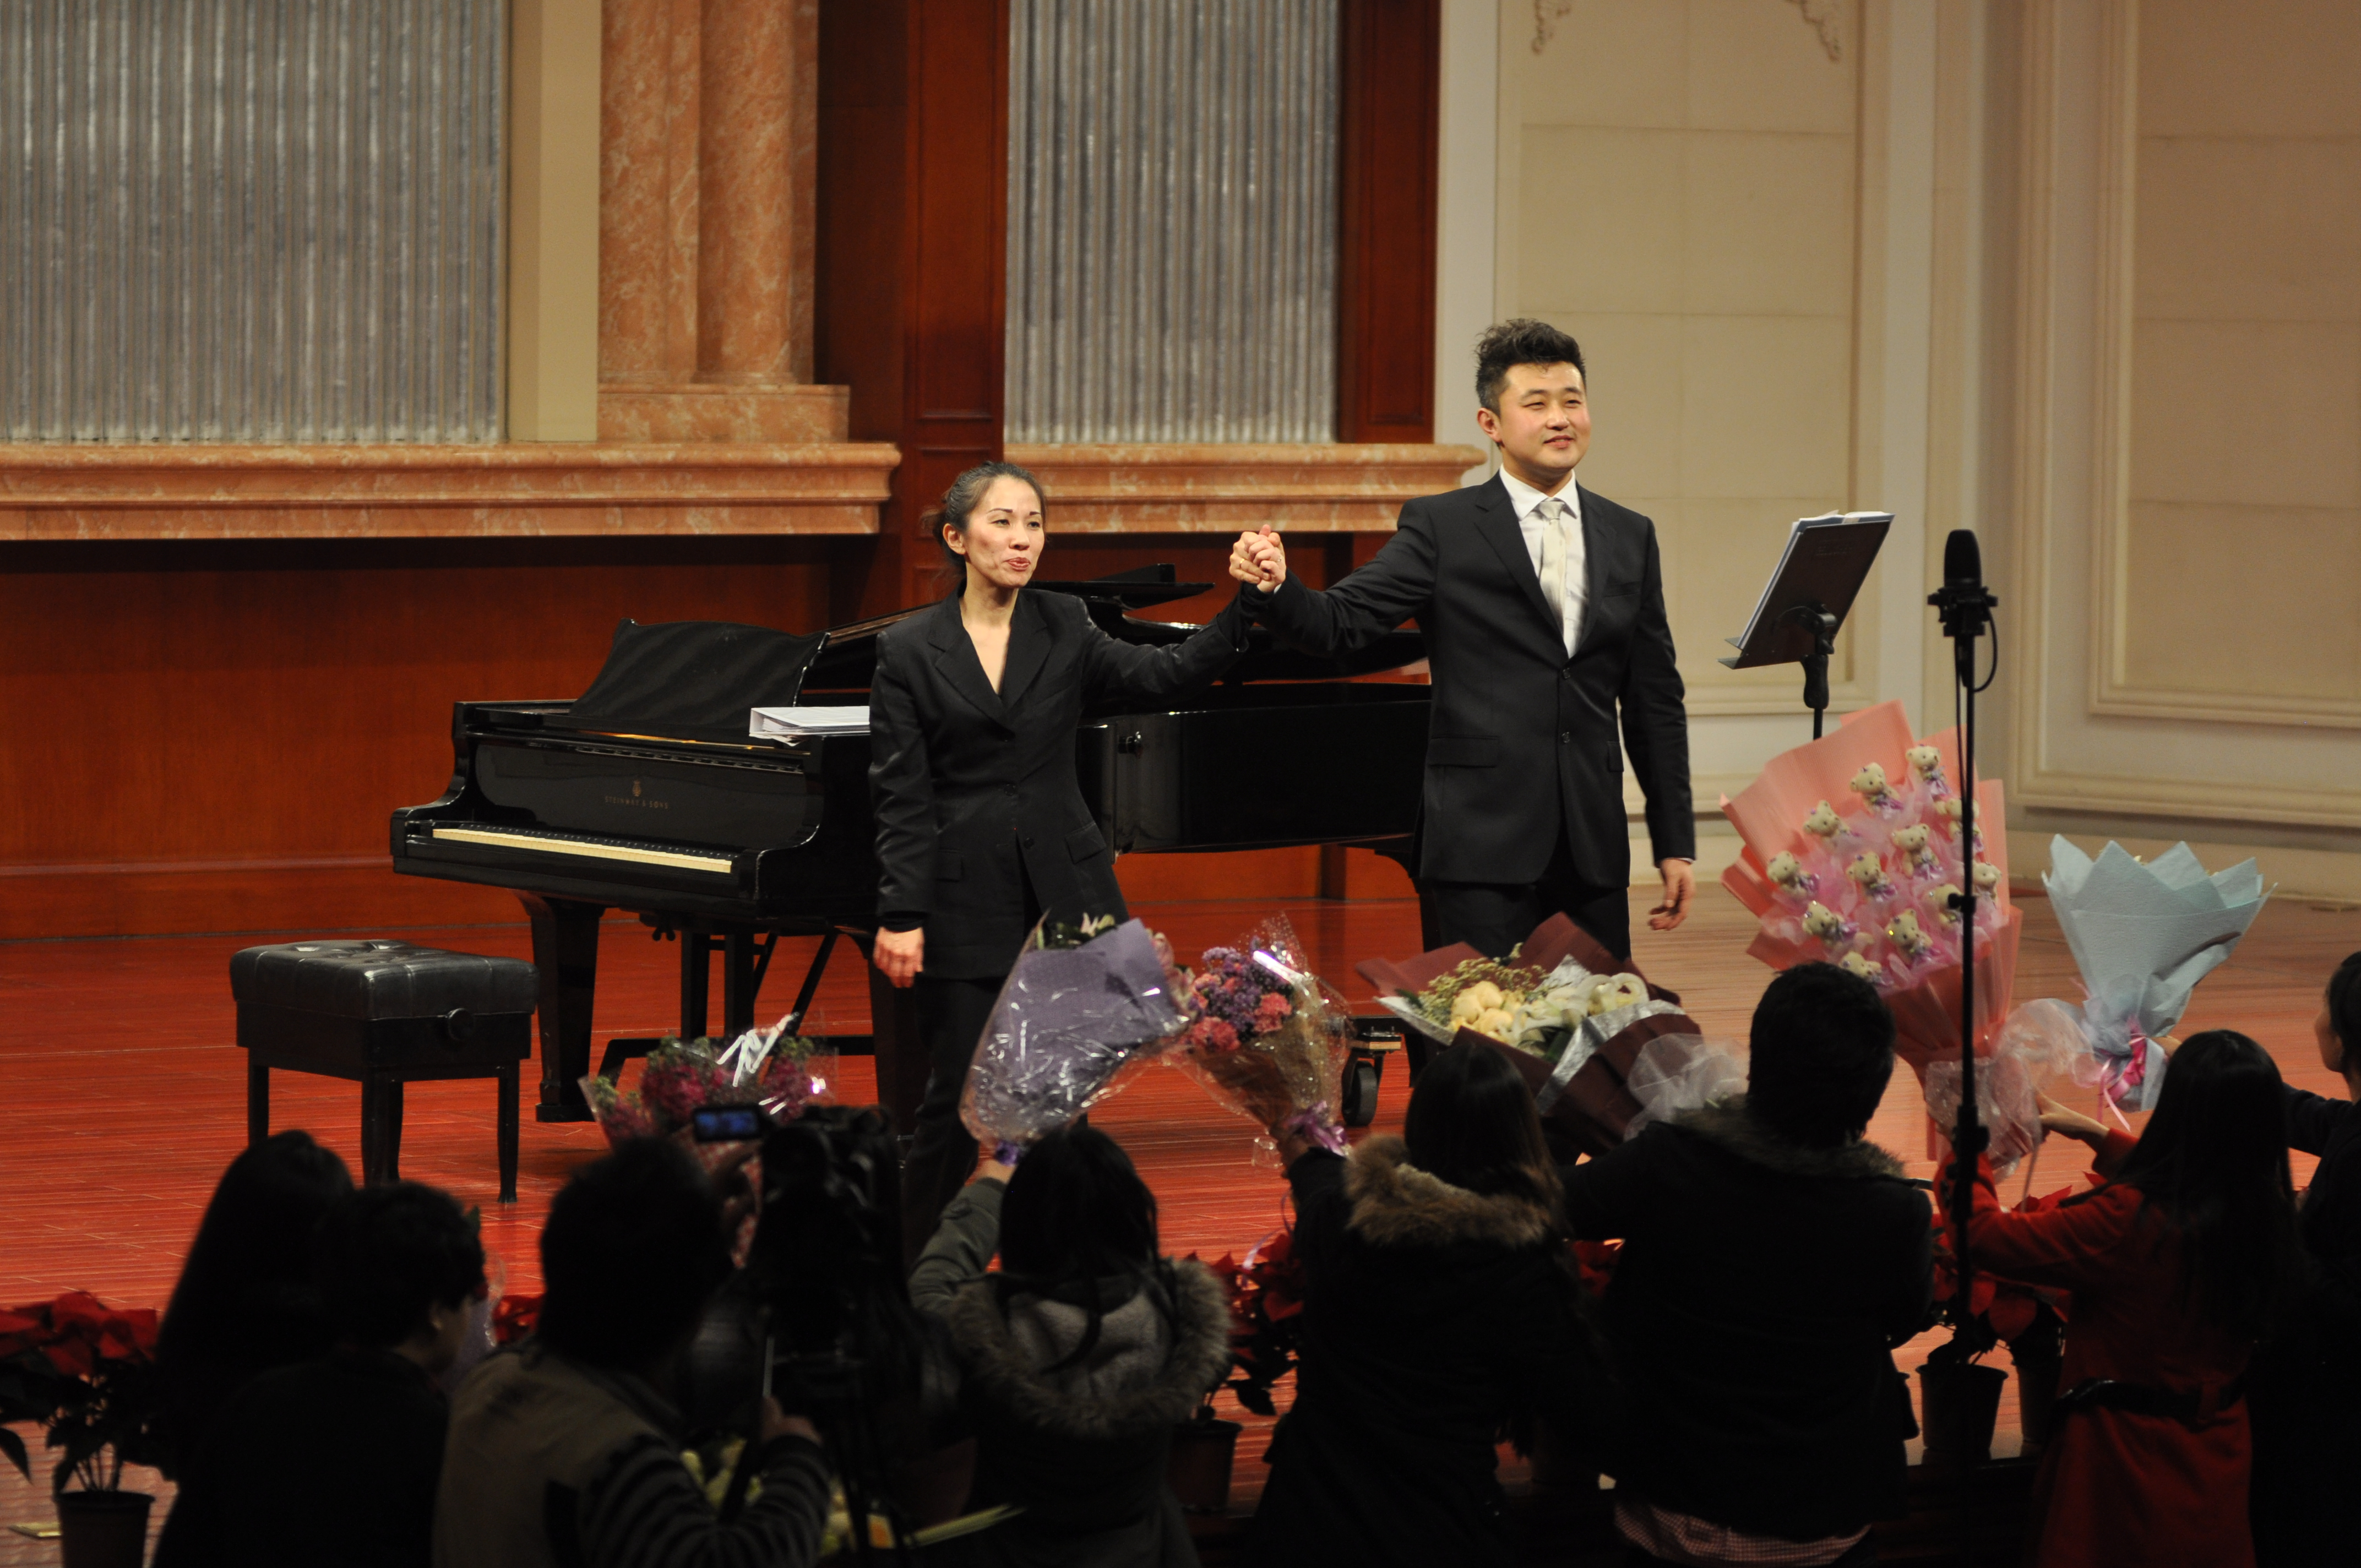 I played for Tenor Yuan Lu's recital at the Tianjin Concert Hall in December 2013.